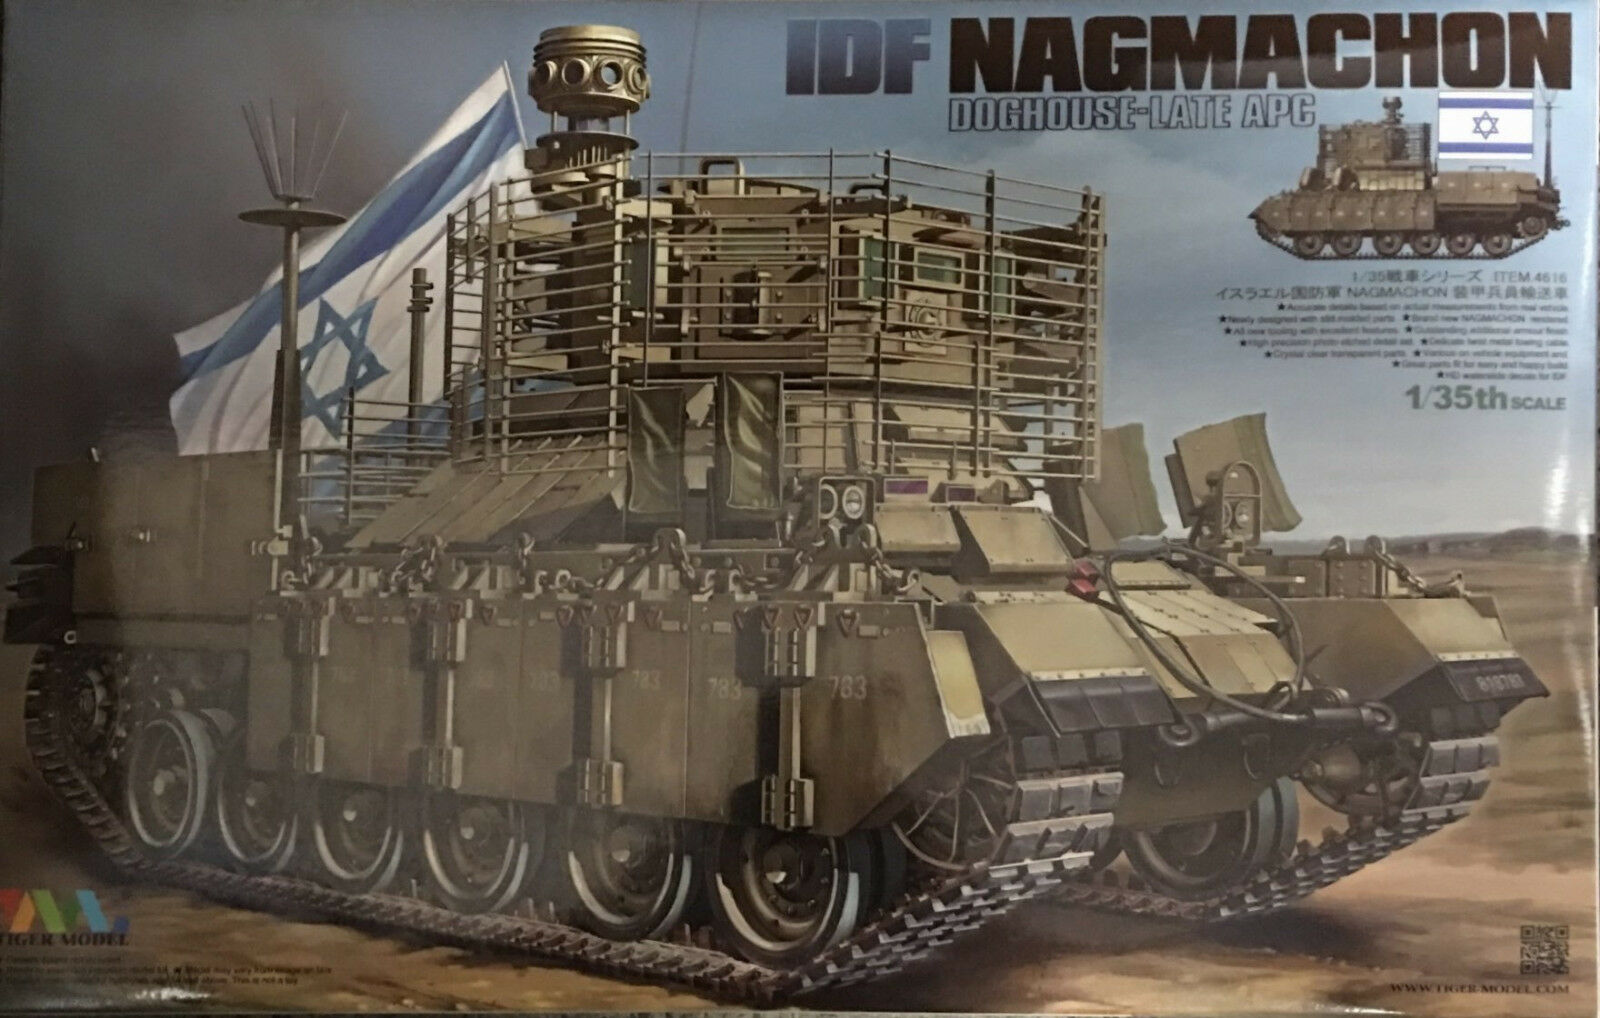 Tiger Models 1 35 IDF Nagmachon Doghouse - Late APC - TIG-4616